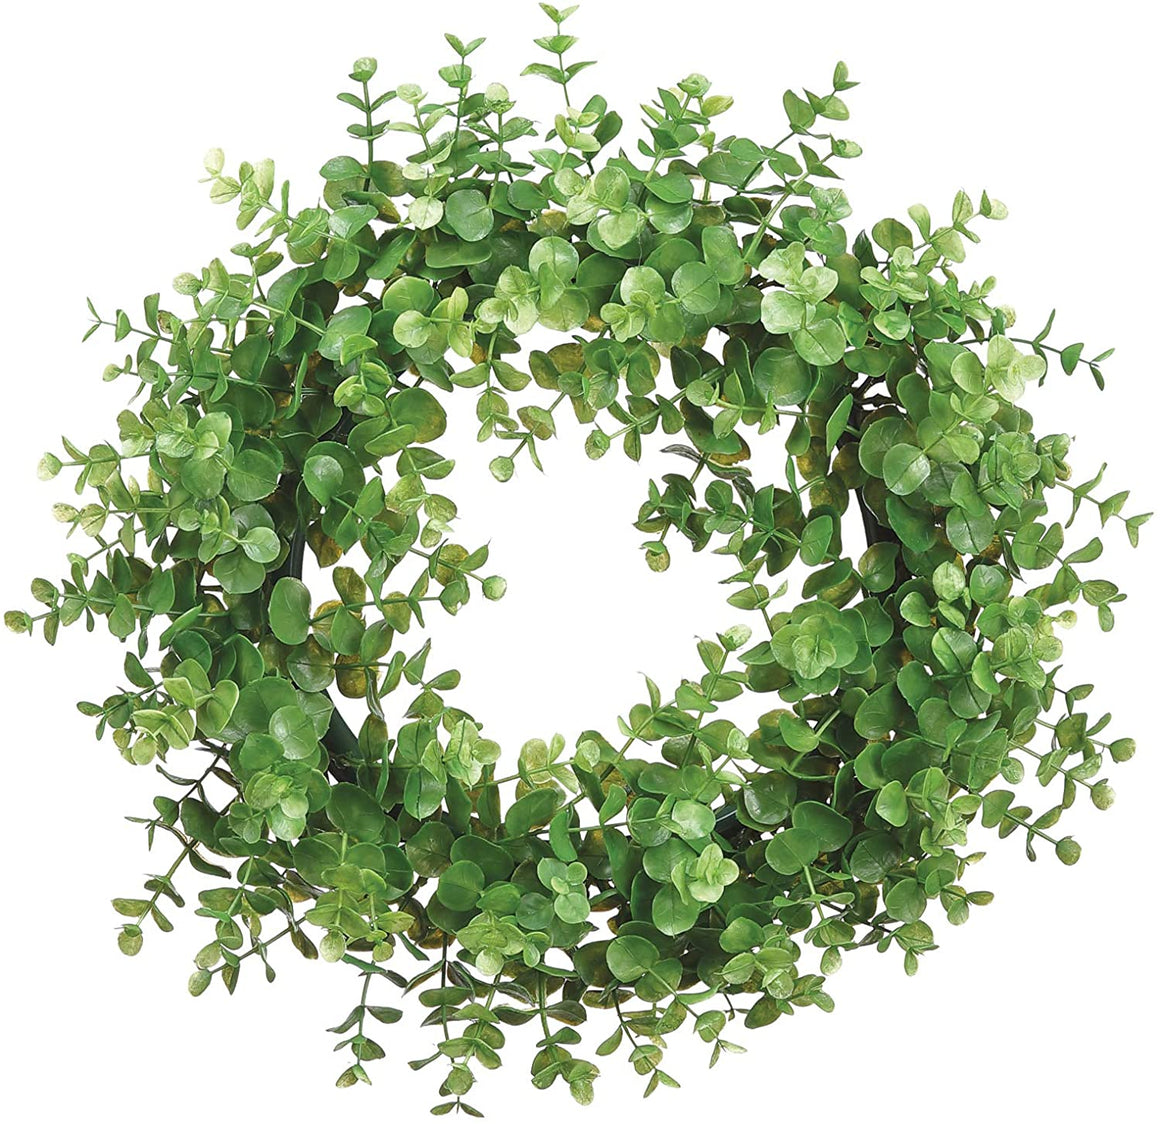 TenWaterloo 14 inch Artificial Eucalyptus Wreath